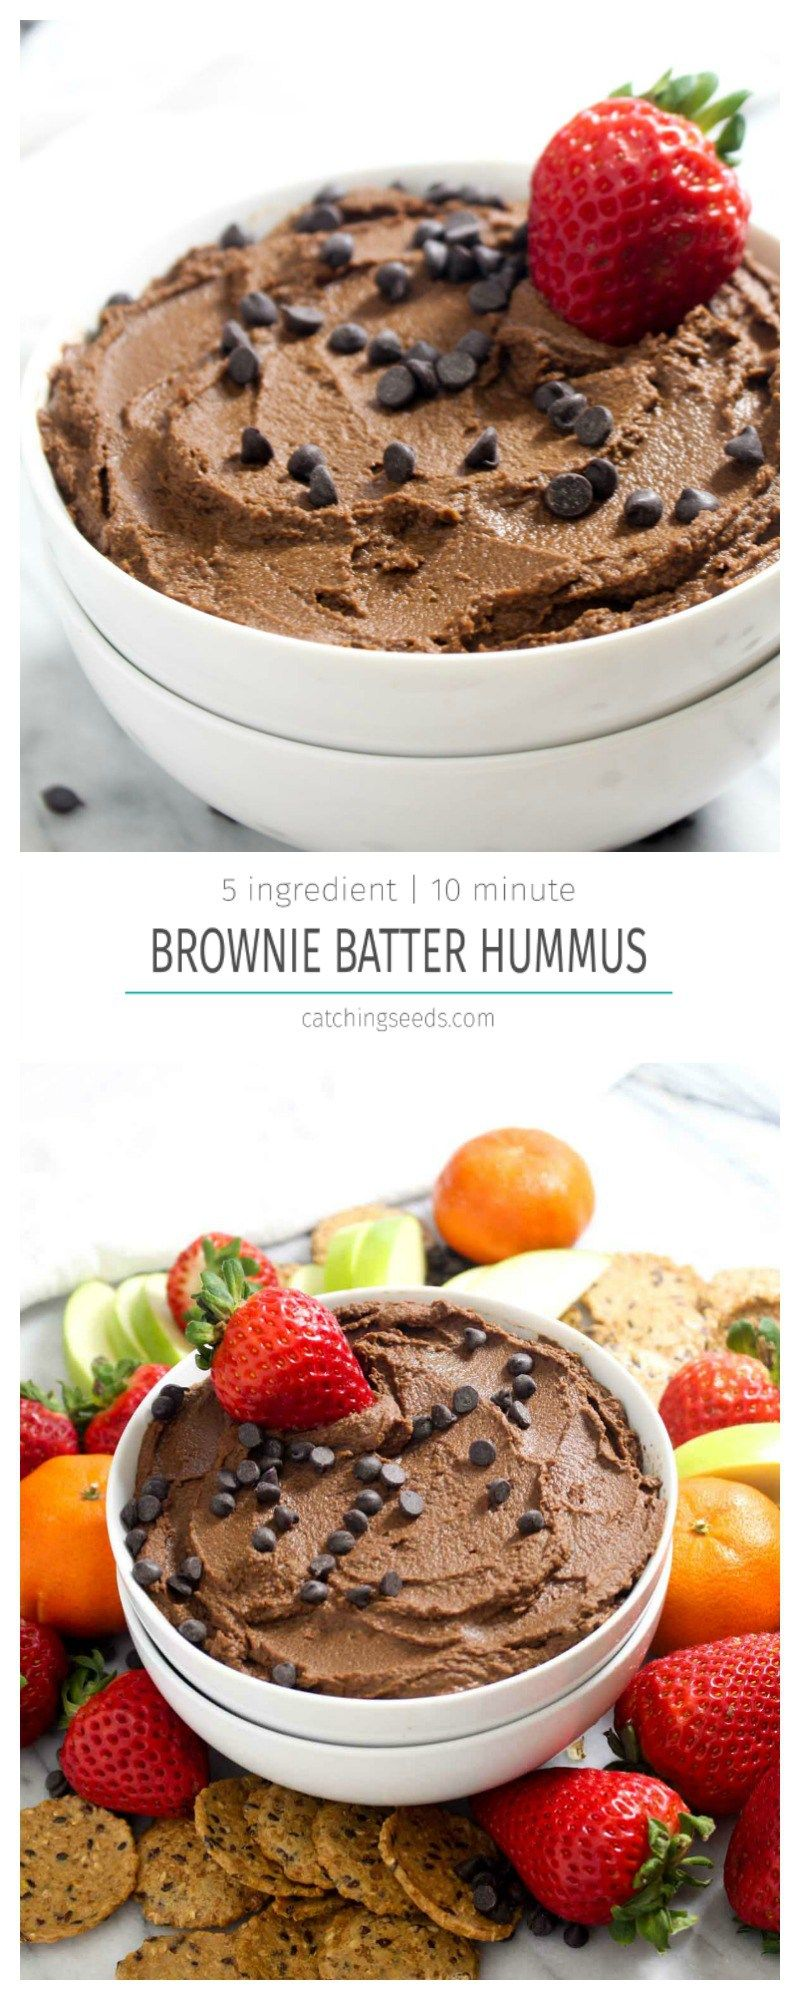 10 Minute Dark Chocolate Hummus | Darn Good Veggies